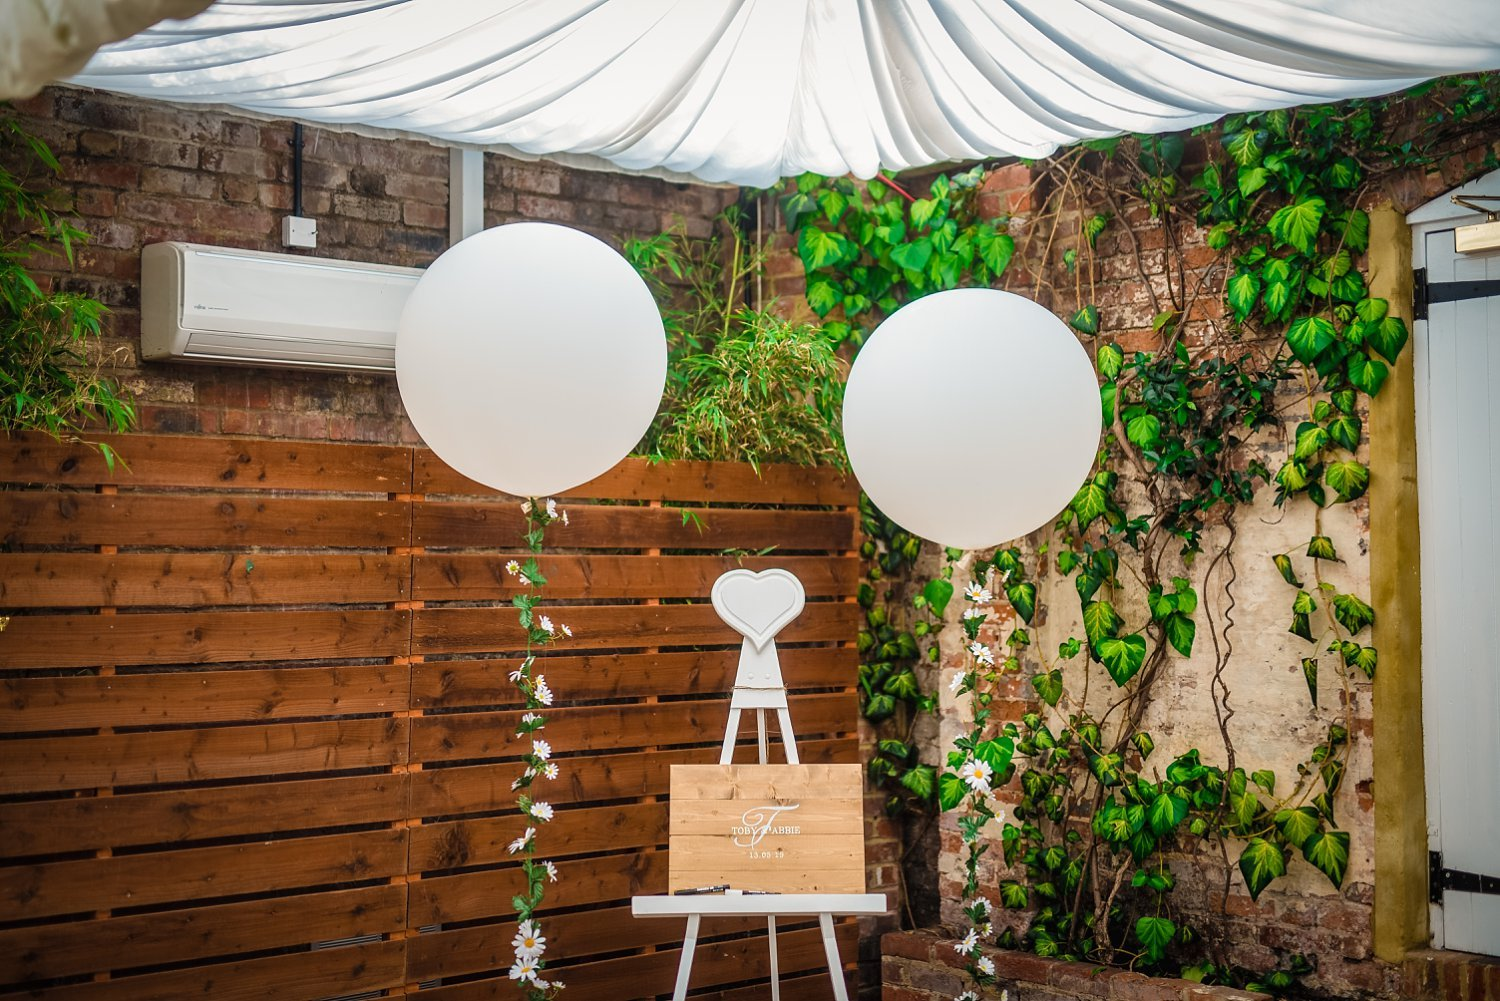 Northbrook Park Wedding - wooden frame with name of the bride and groom. their wedding guests can write a little message on it (congratulating them). there are too big white baloons on each side